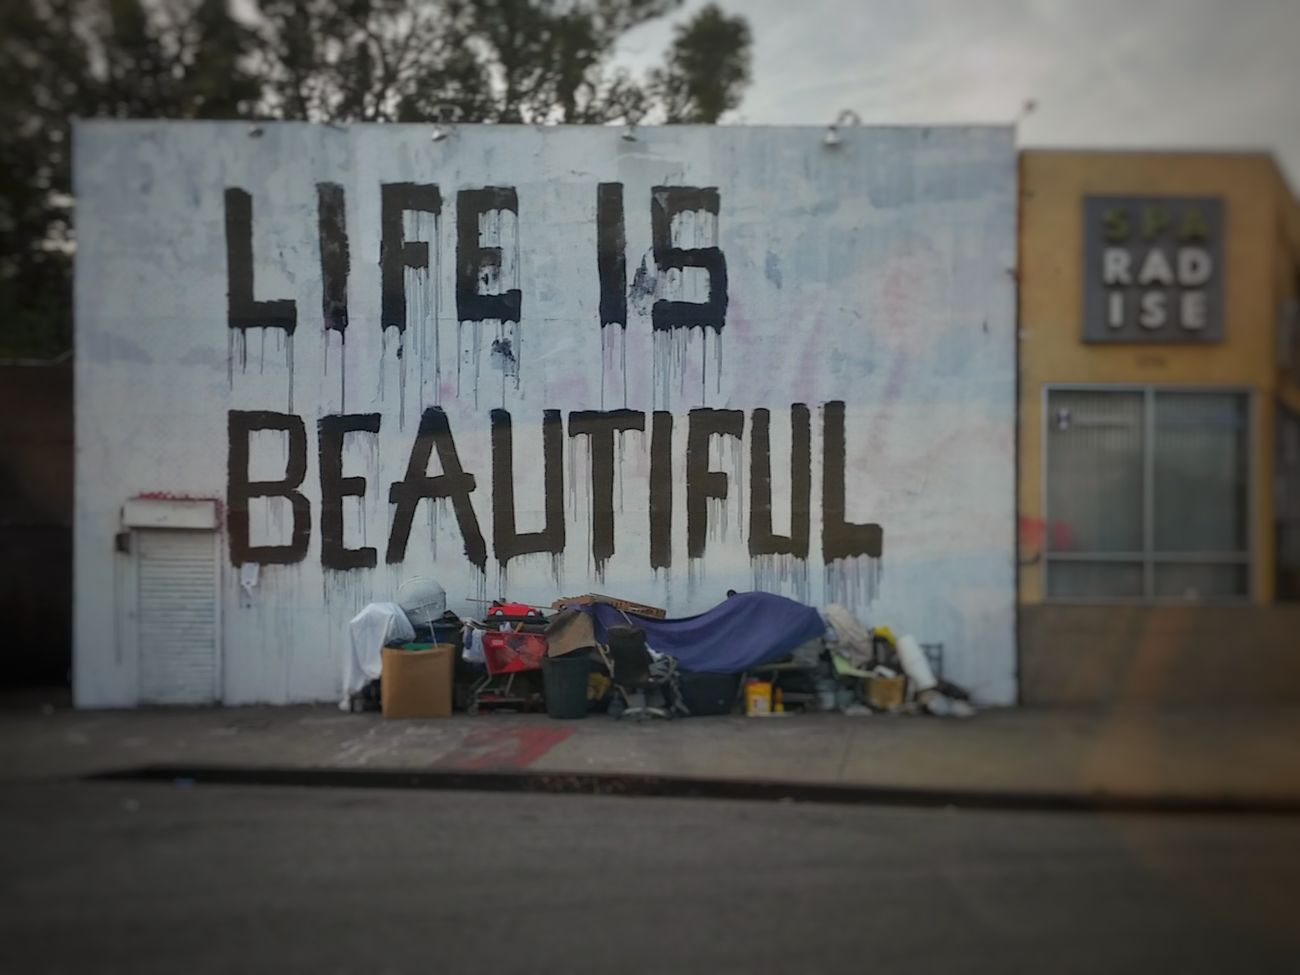 Life Is Beautiful Graffiti Art Street Art Street Artist Mr. Brainwash Homeless Juxtapoz Juxtaposition Homelessness  Homeless People Street Photography Urban Art Graffitiart Graffiti & Streetart Graffiti Photography Urban Exploration Urban Photography Urban Lifestyle Urban Landscape Urban Geometry Brick Building Graffiti Wall Los Angeles Life Los Angeles - Street Los Angeles, California